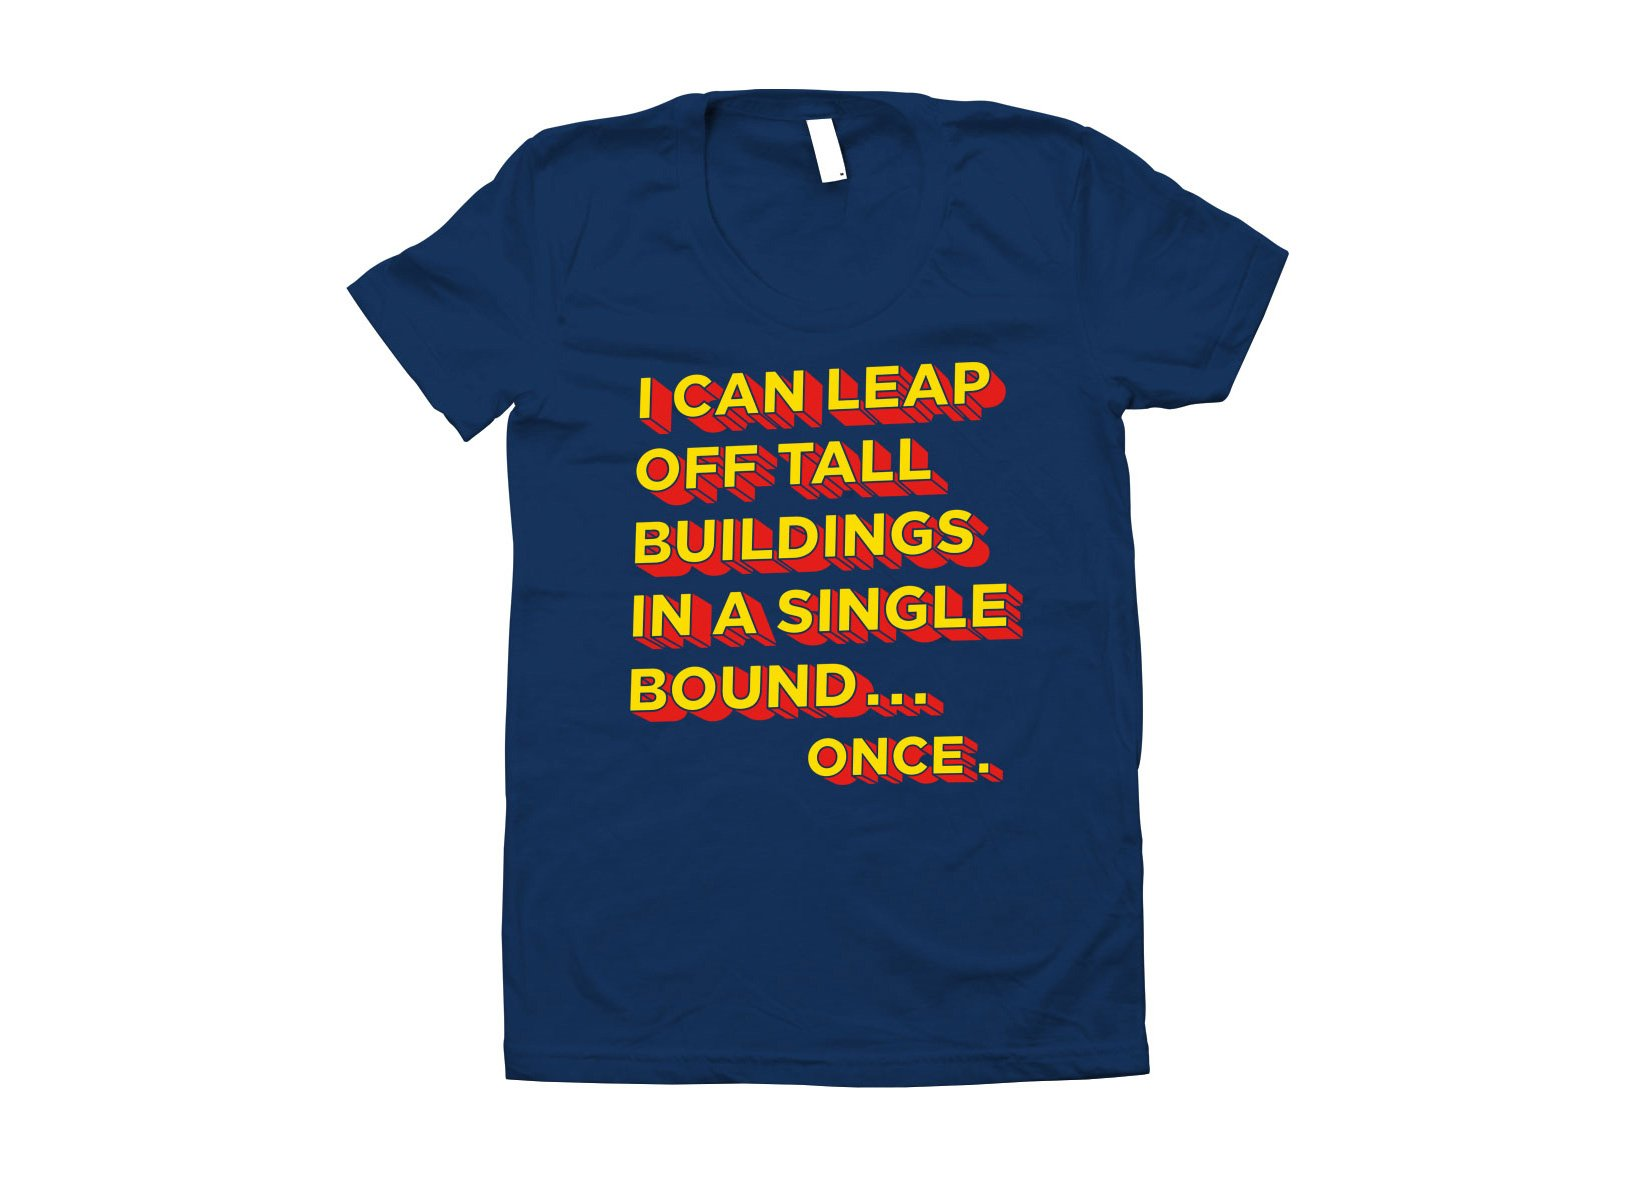 Tall Buildings In A Single Bound on Juniors T-Shirt